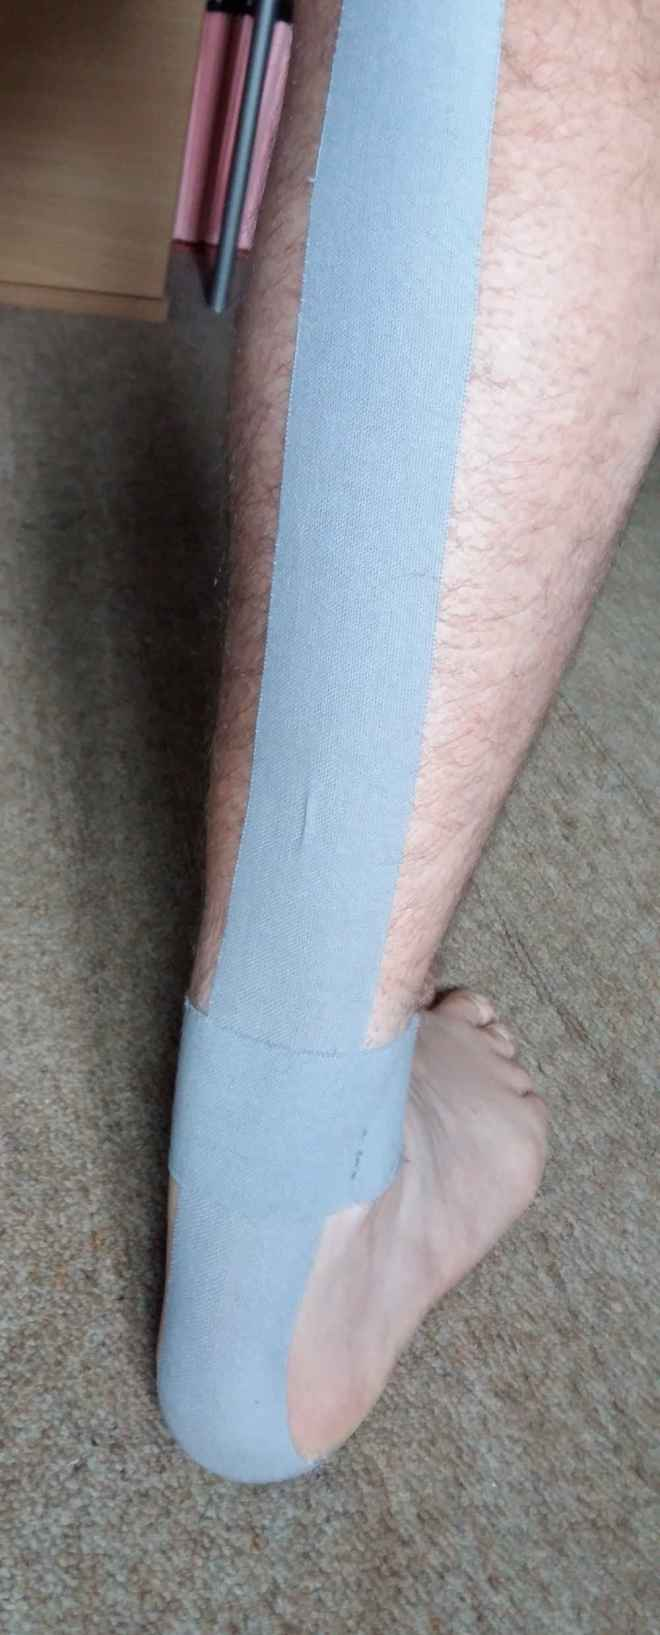 ankle taping pic